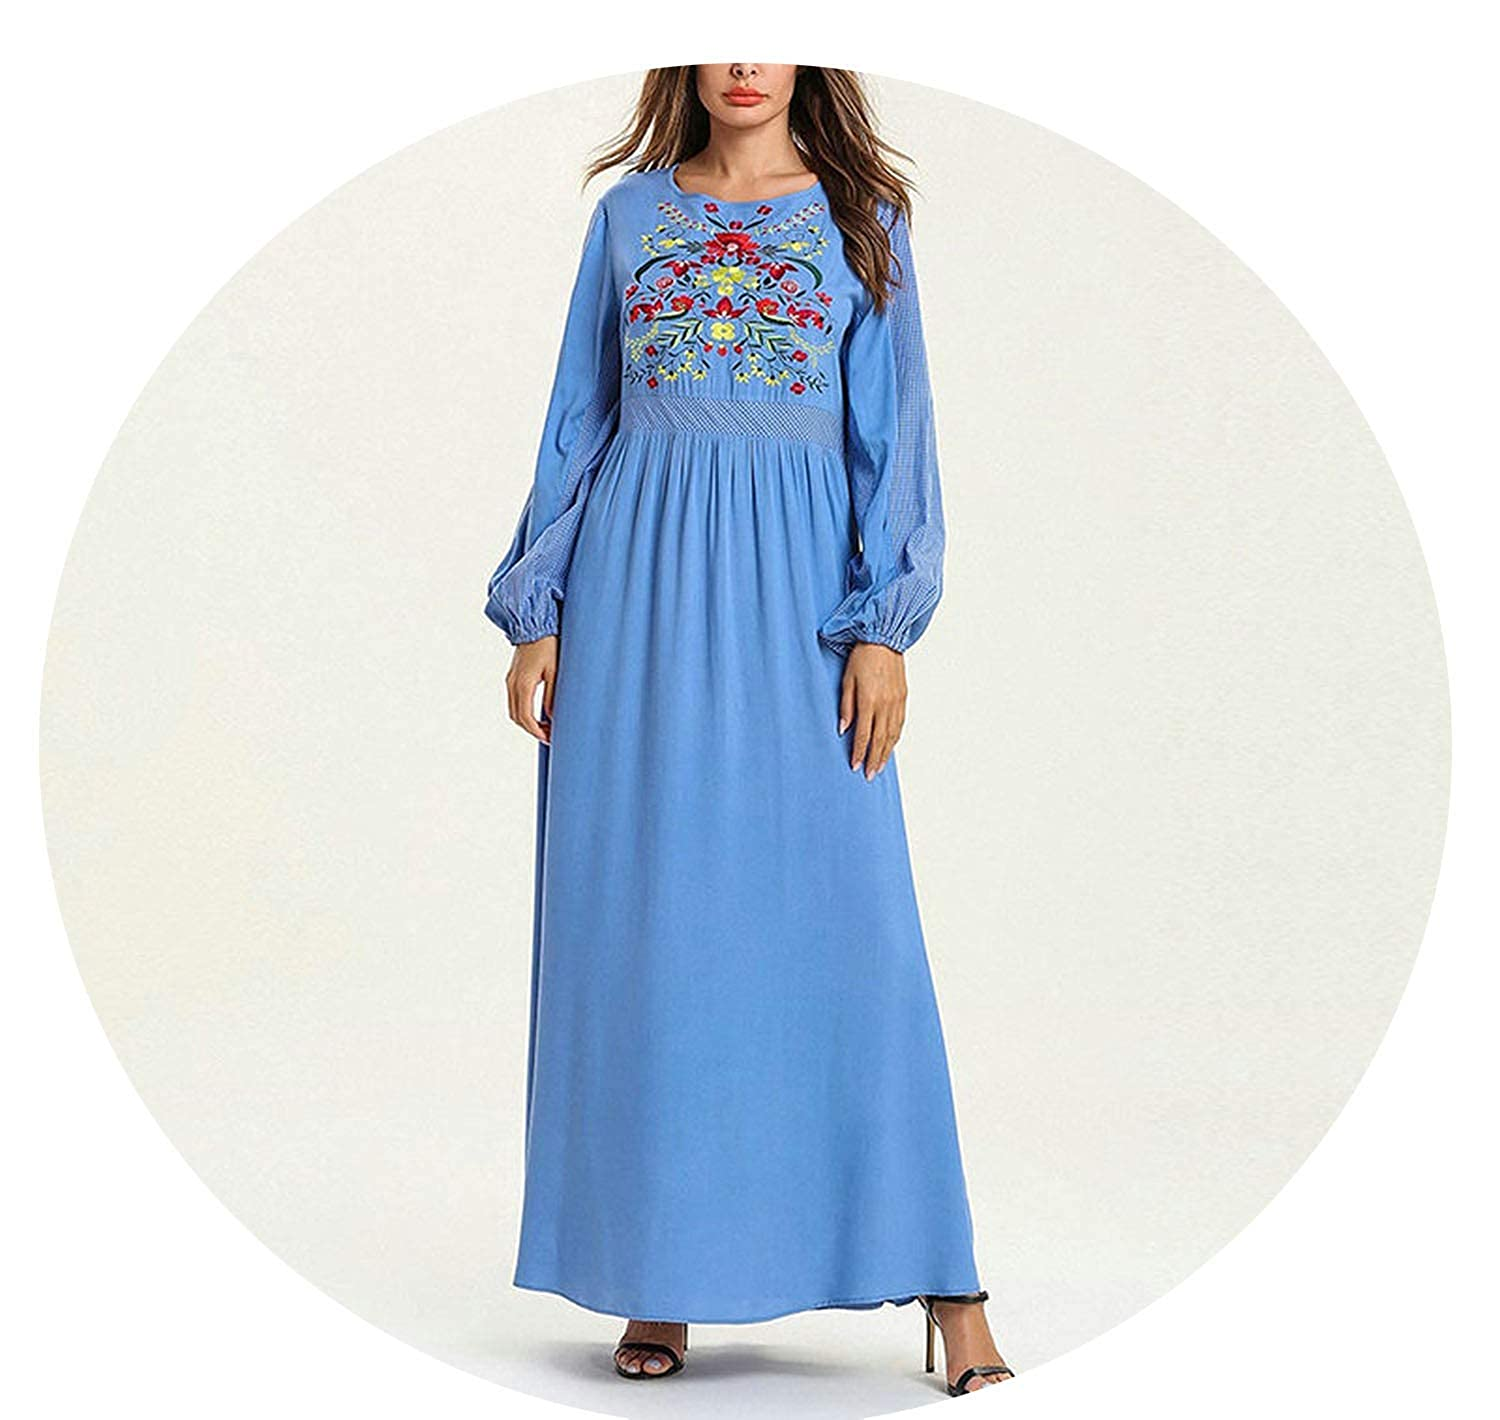 bluee dress bluee Draped Swing Long Dress Elegant Ethnic Floral Embroidery Maxi Dresses Young Ladies Casual Ramadan